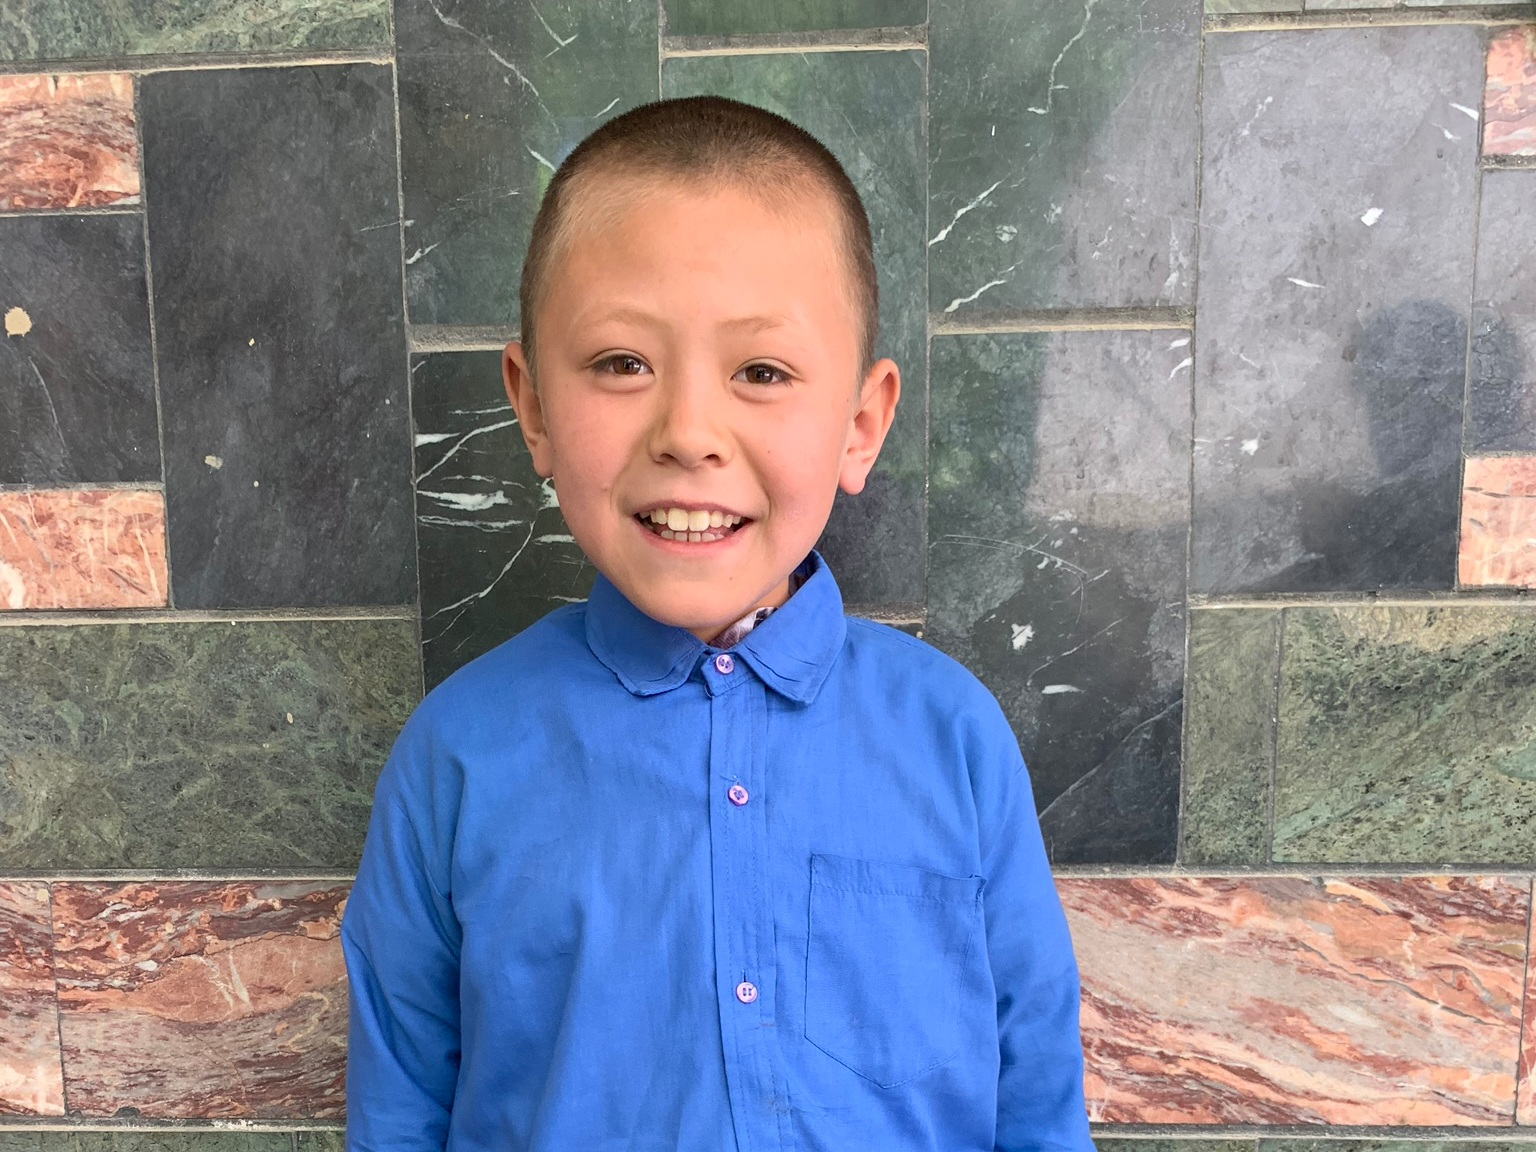 Amer Husin, Age 10 - Amer Husein has 5 siblings. His mother is not employed and his father is a plumber. Amer's father is a graduate of the Sozo Vocational Training Center.BE AMER' HUSEIN'S PARTNER>